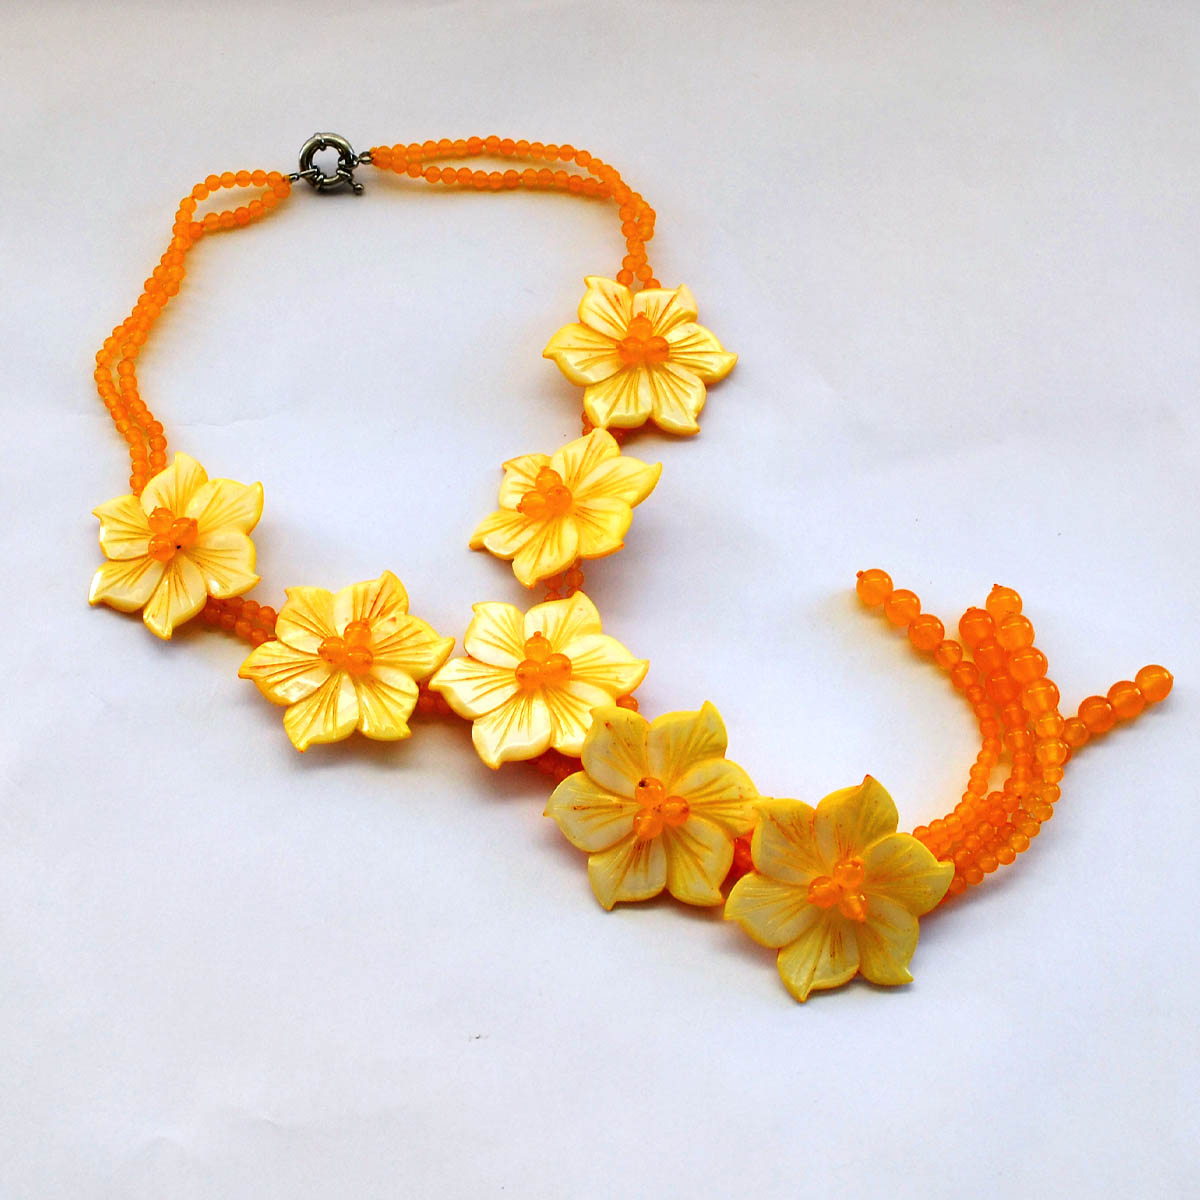 Yellow Jade Necklace - This hand crafted necklace will stand out with its vibrant floral design. Materials include yellow jade along with dyed mother of pearl.